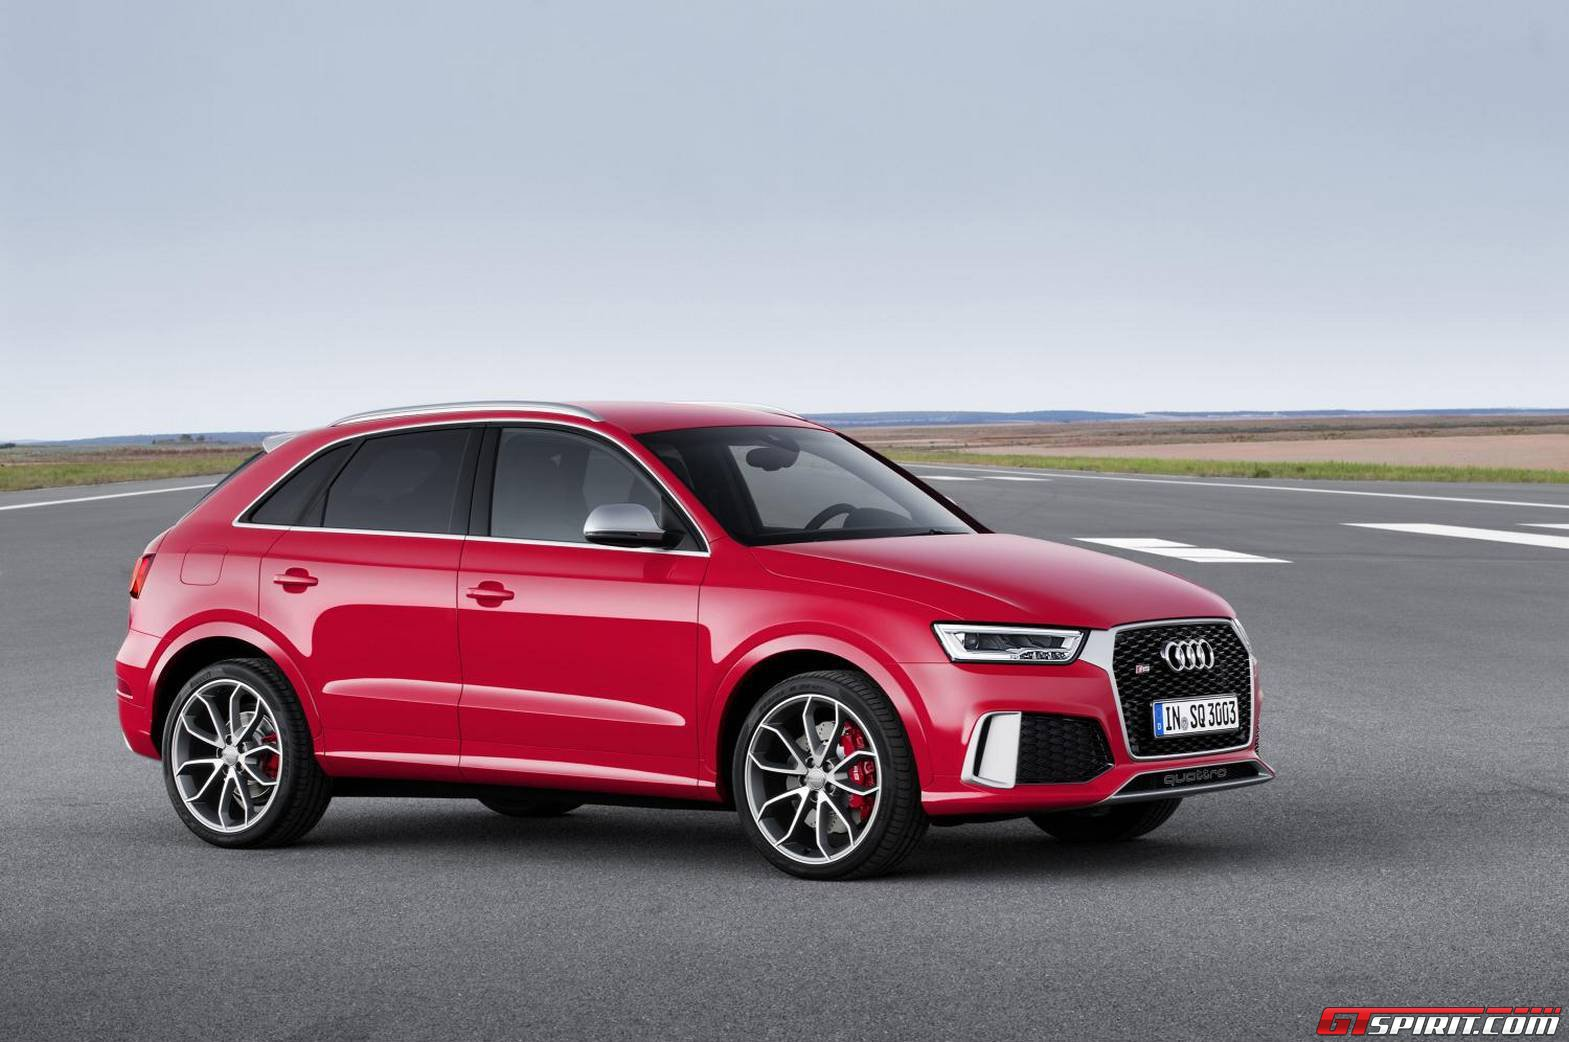 Official 2015 audi q3 rs q3 facelift gtspirit for Quando esce la nuova audi q3 2018